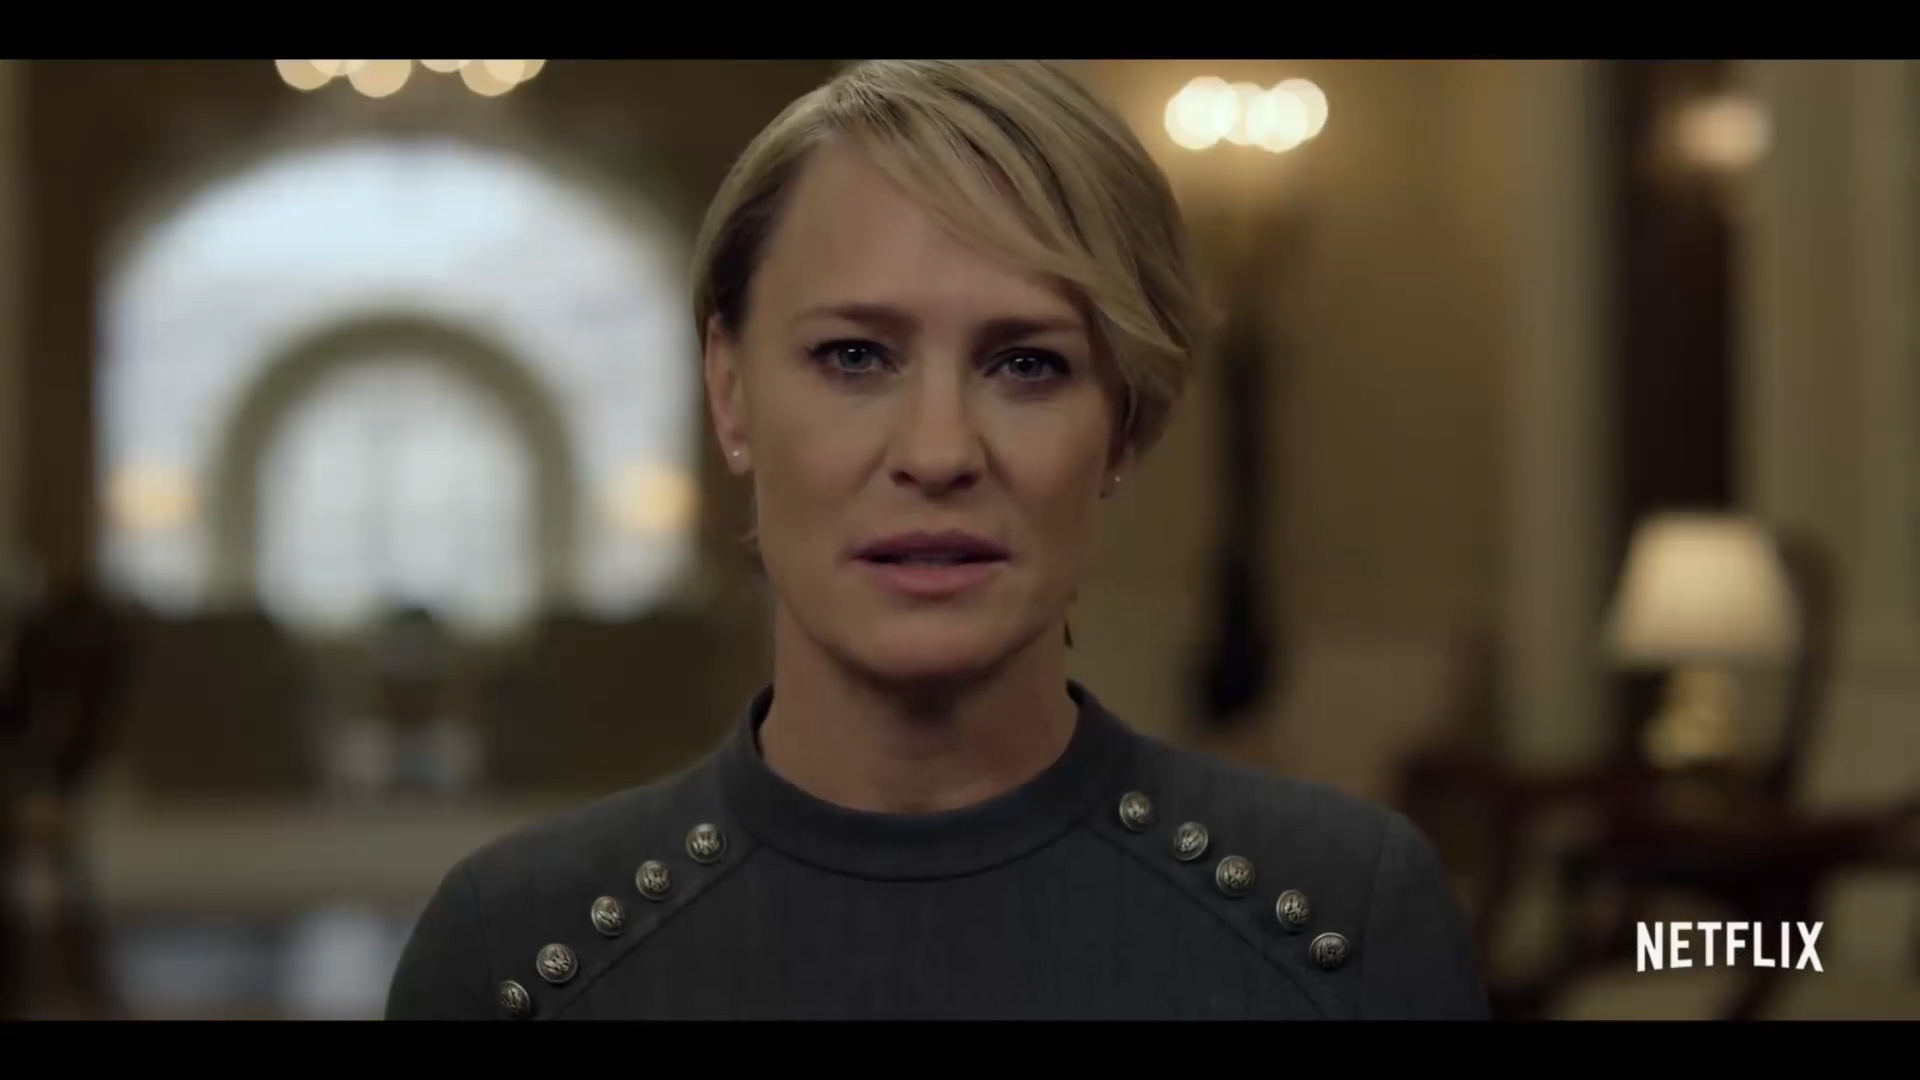 House of Cards: A Message From the Underwood Administration